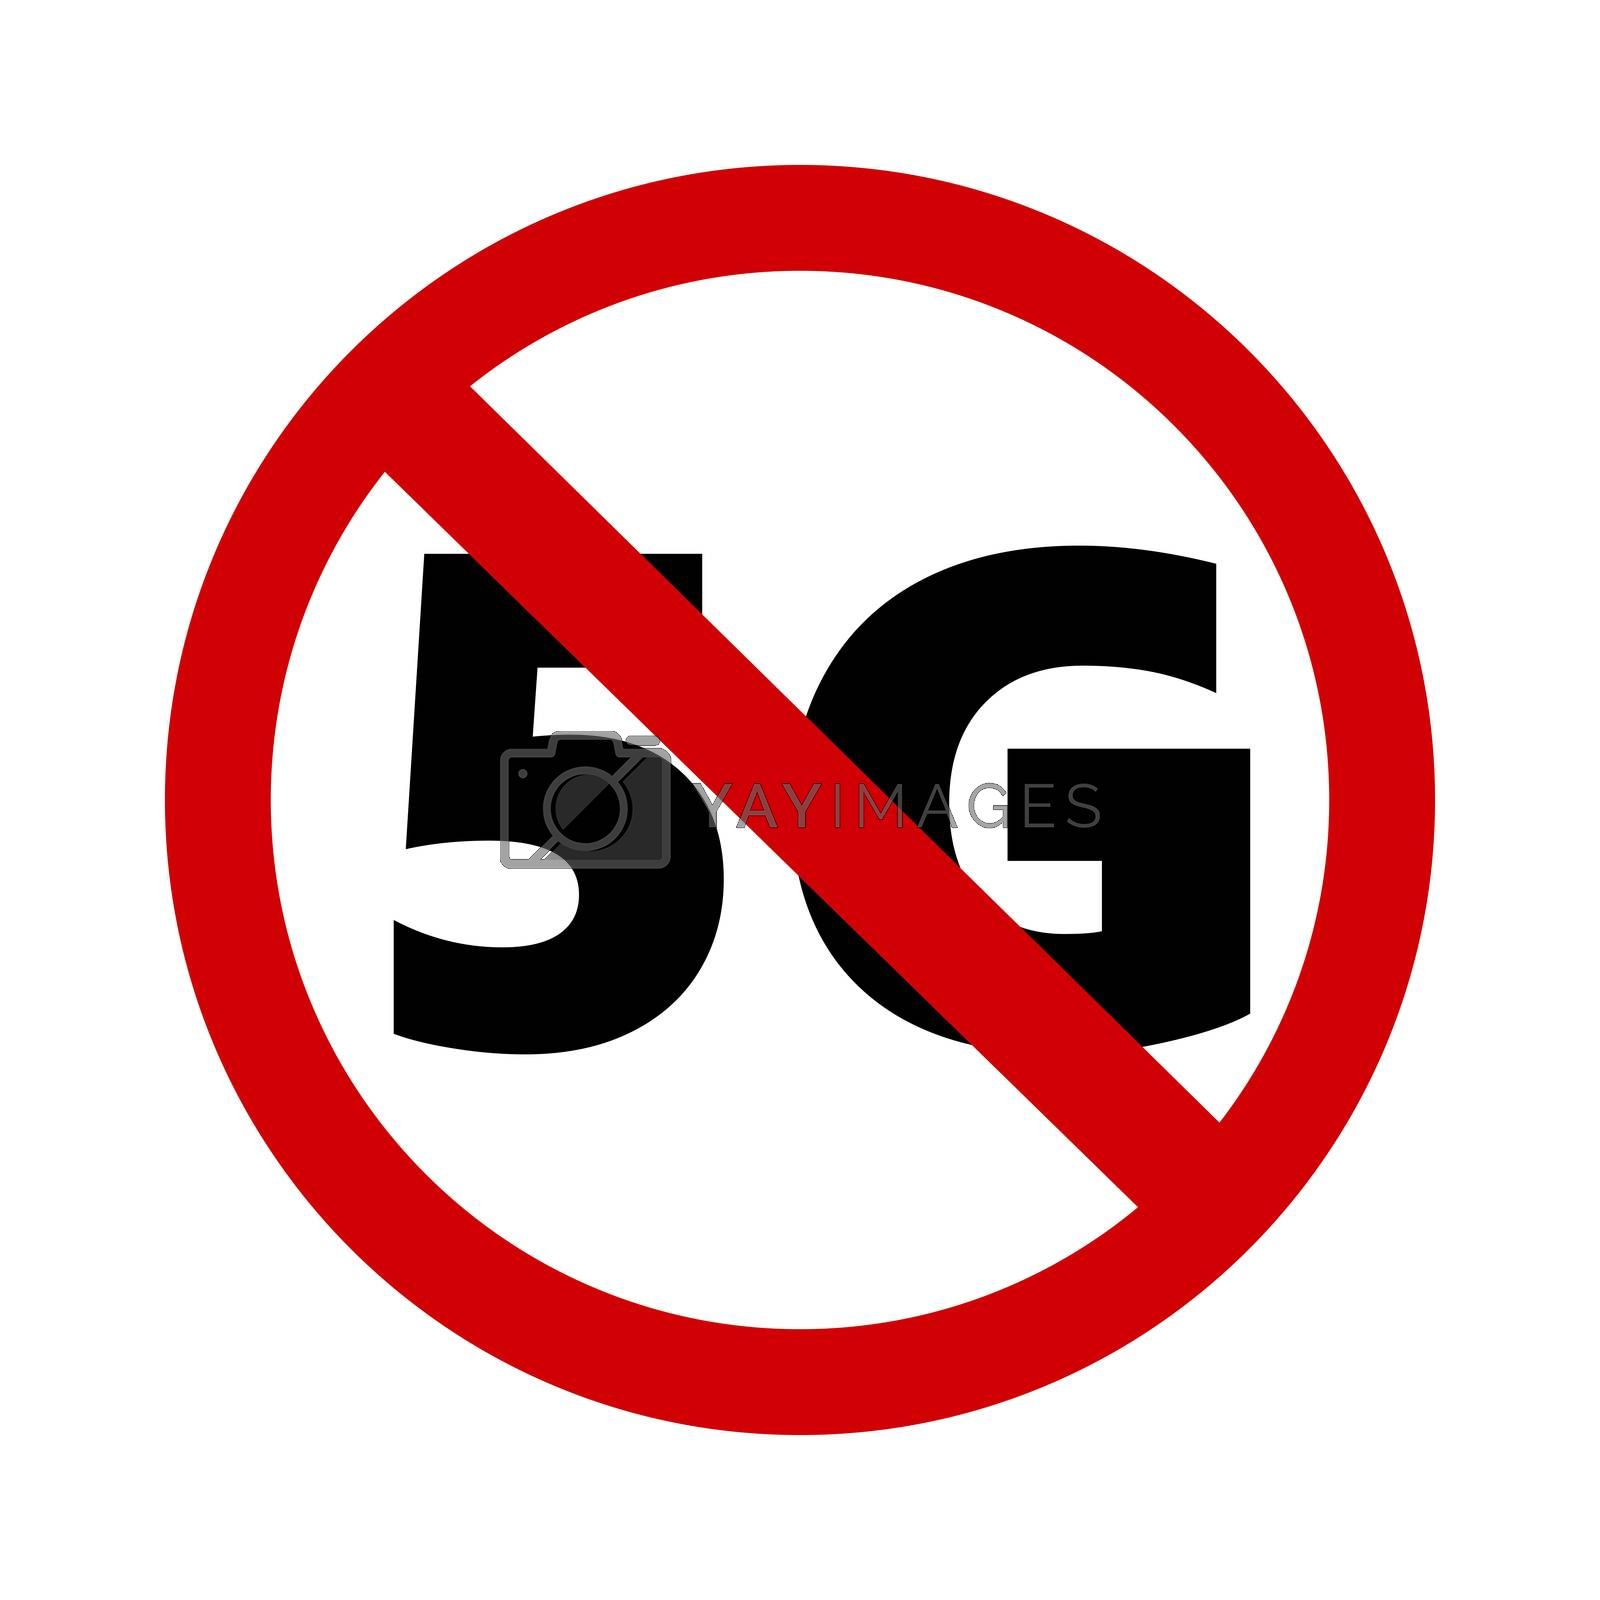 Royalty free image of stop 5G by tony4urban